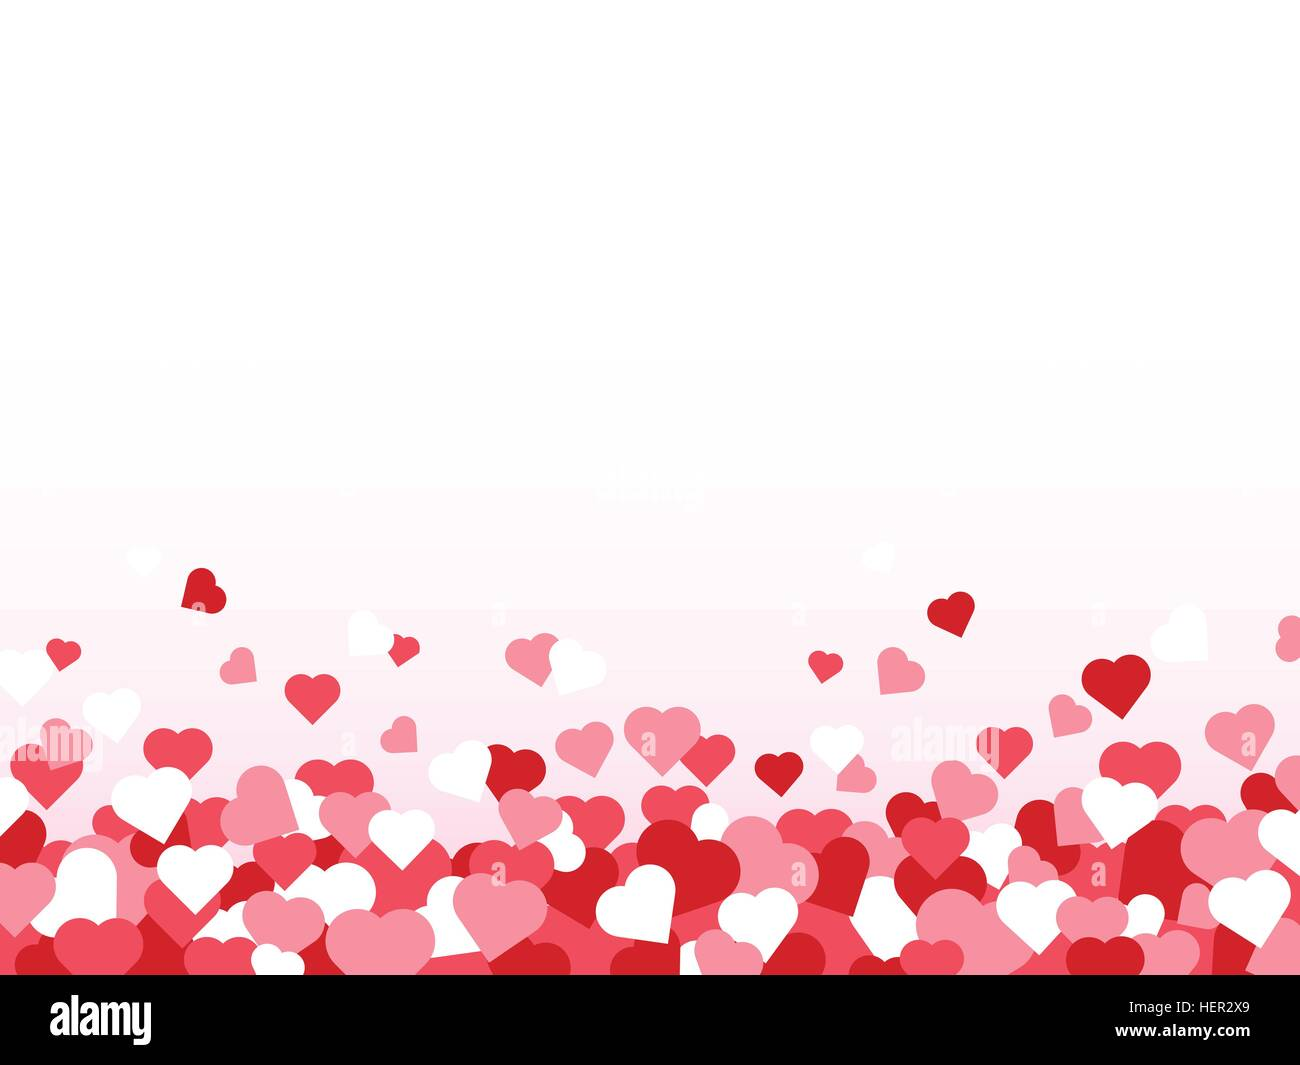 Abstract Background For Valentines Day Greetings With